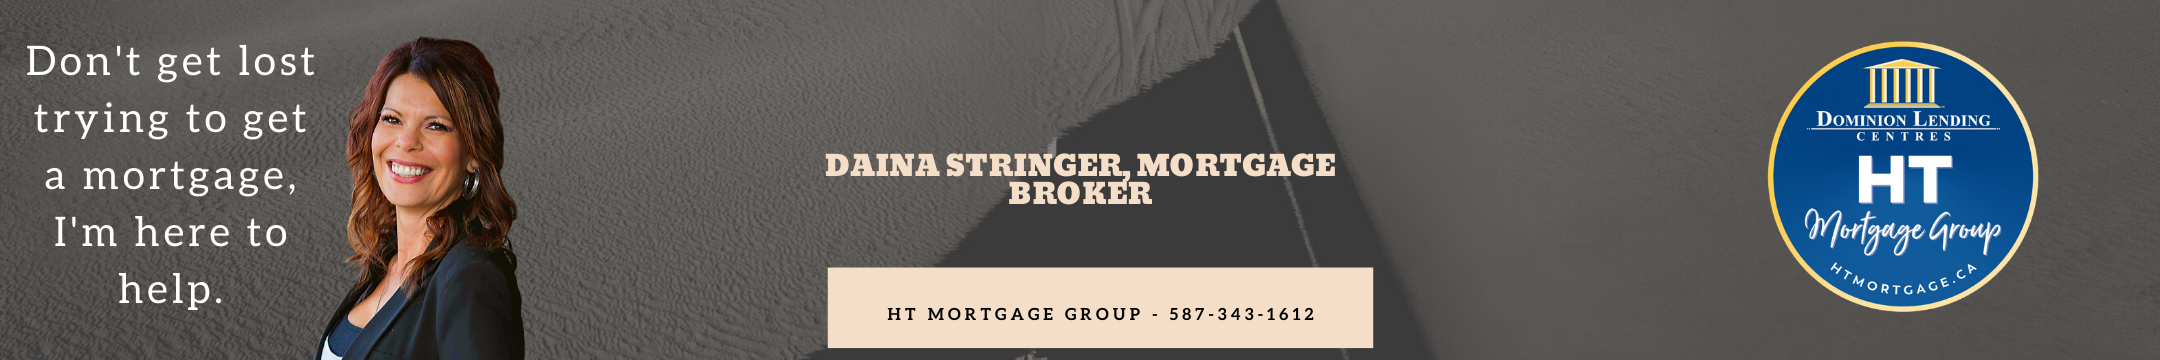 Benefits of Using a Mortgage Professional banner